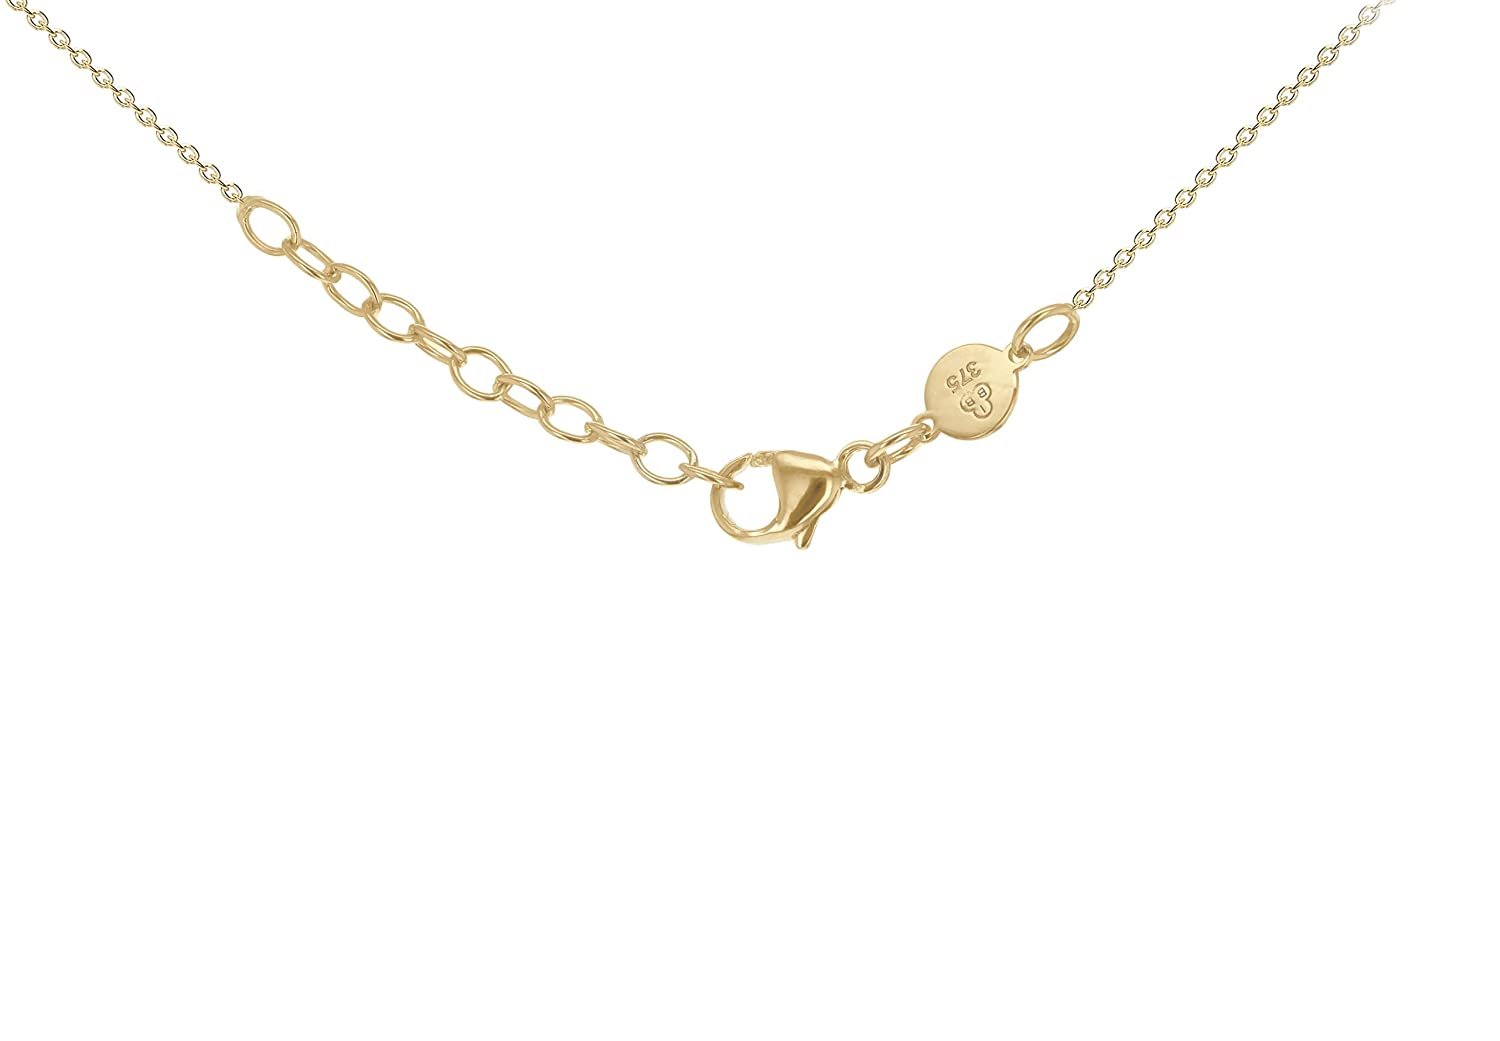 Carissima Gold 9 ct Gold 35 x 5 mm Horizontal Bar Adjustable Necklace Oax7IMWTO